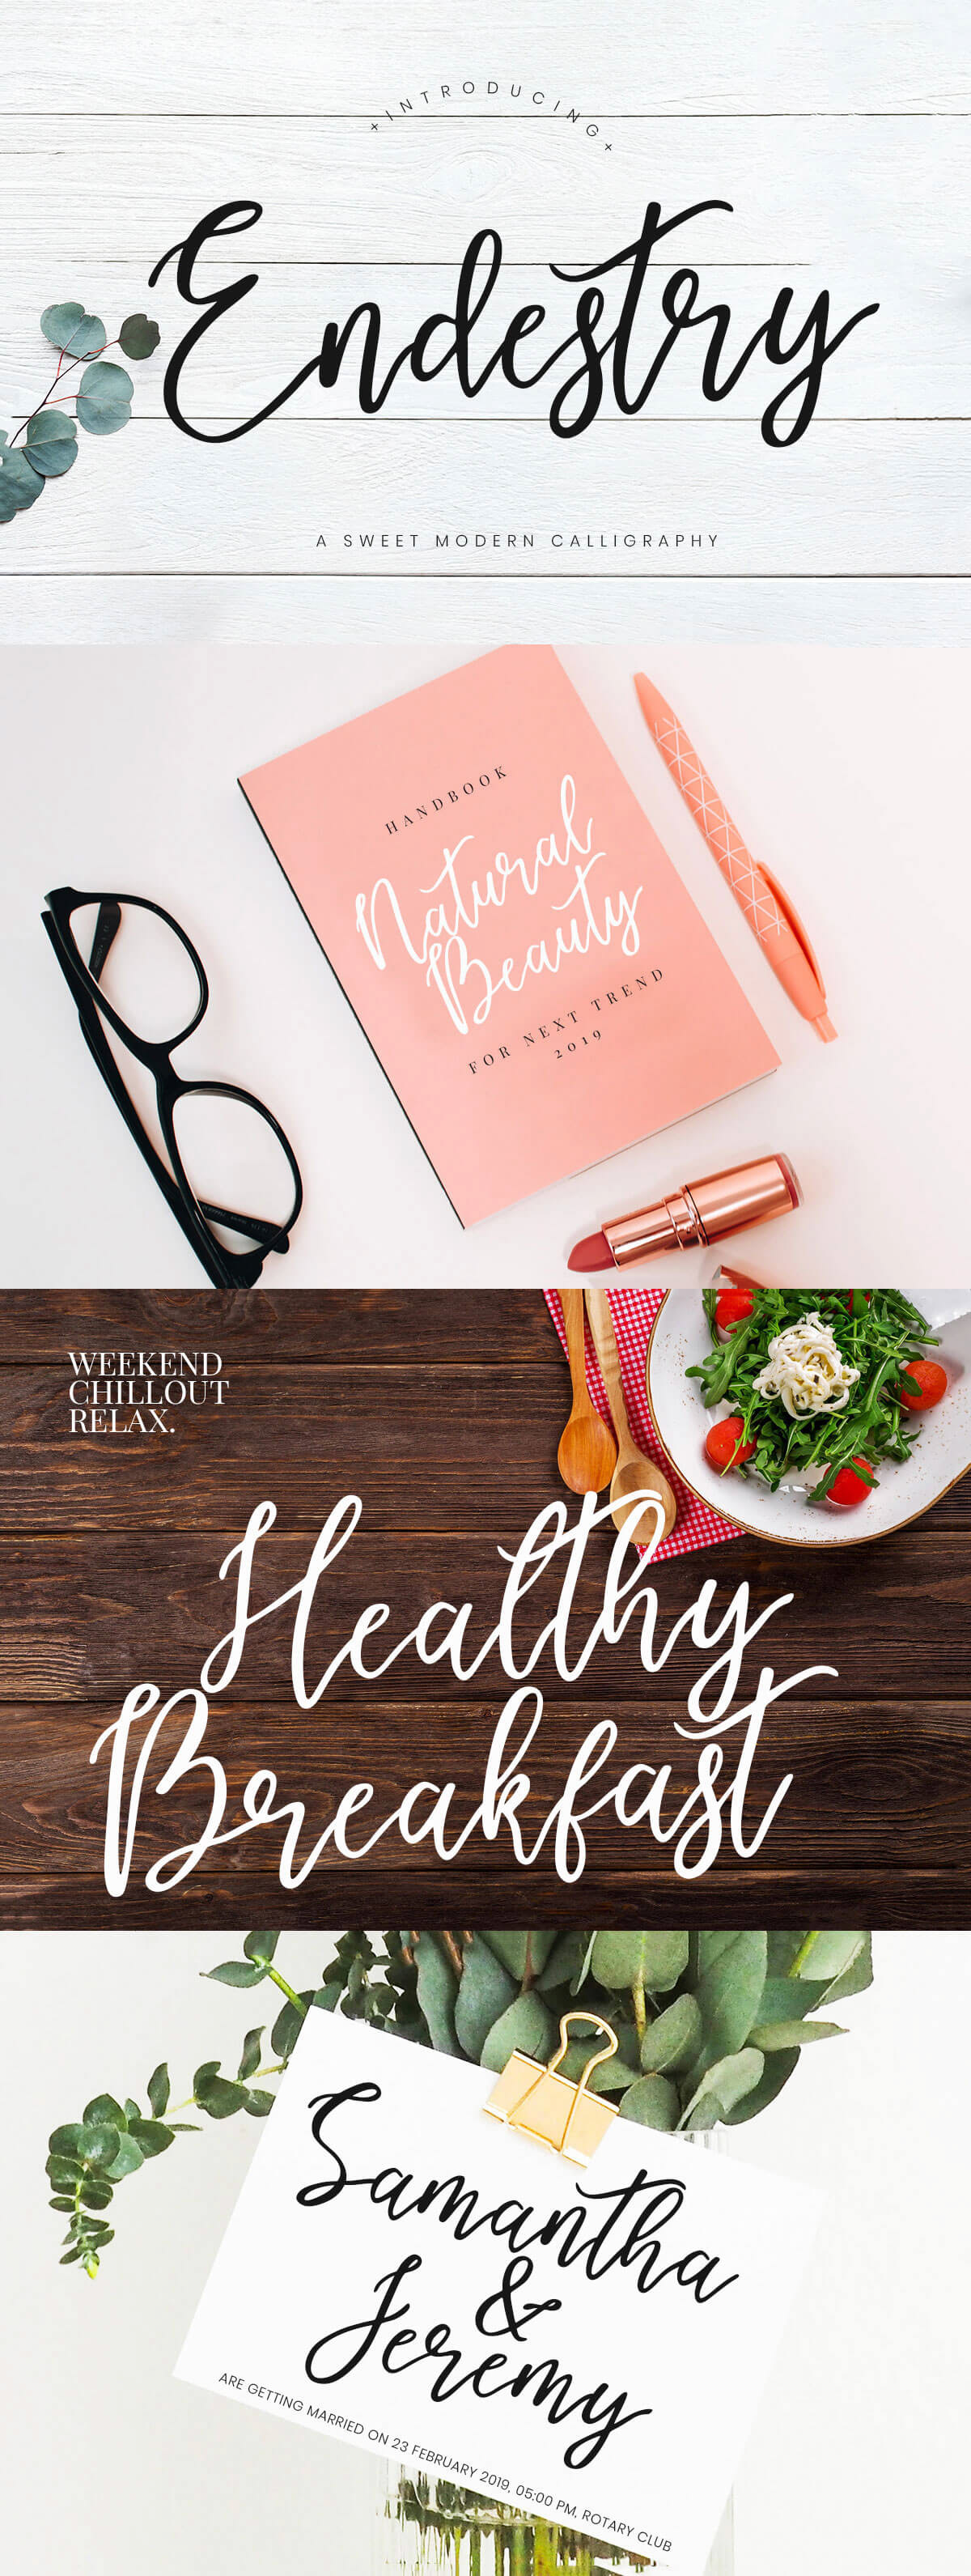 branding  caligraphy font Calligraphy   calligraphy font download font free free fonts lettering logo